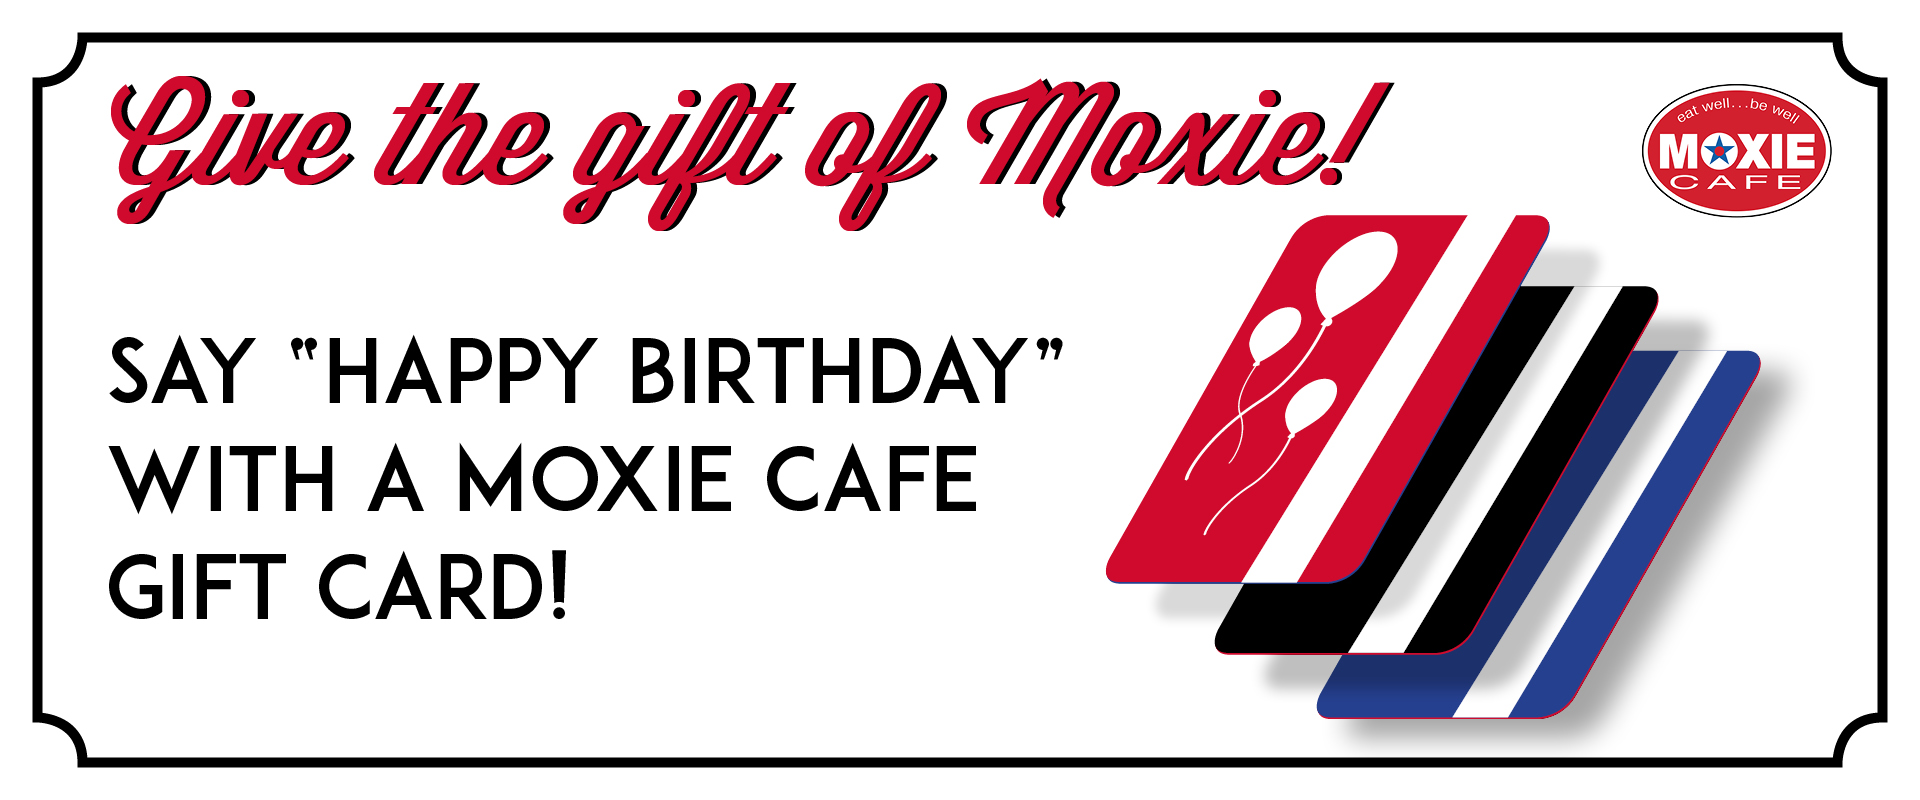 B-Day-Giftcard_Web-Slide-1